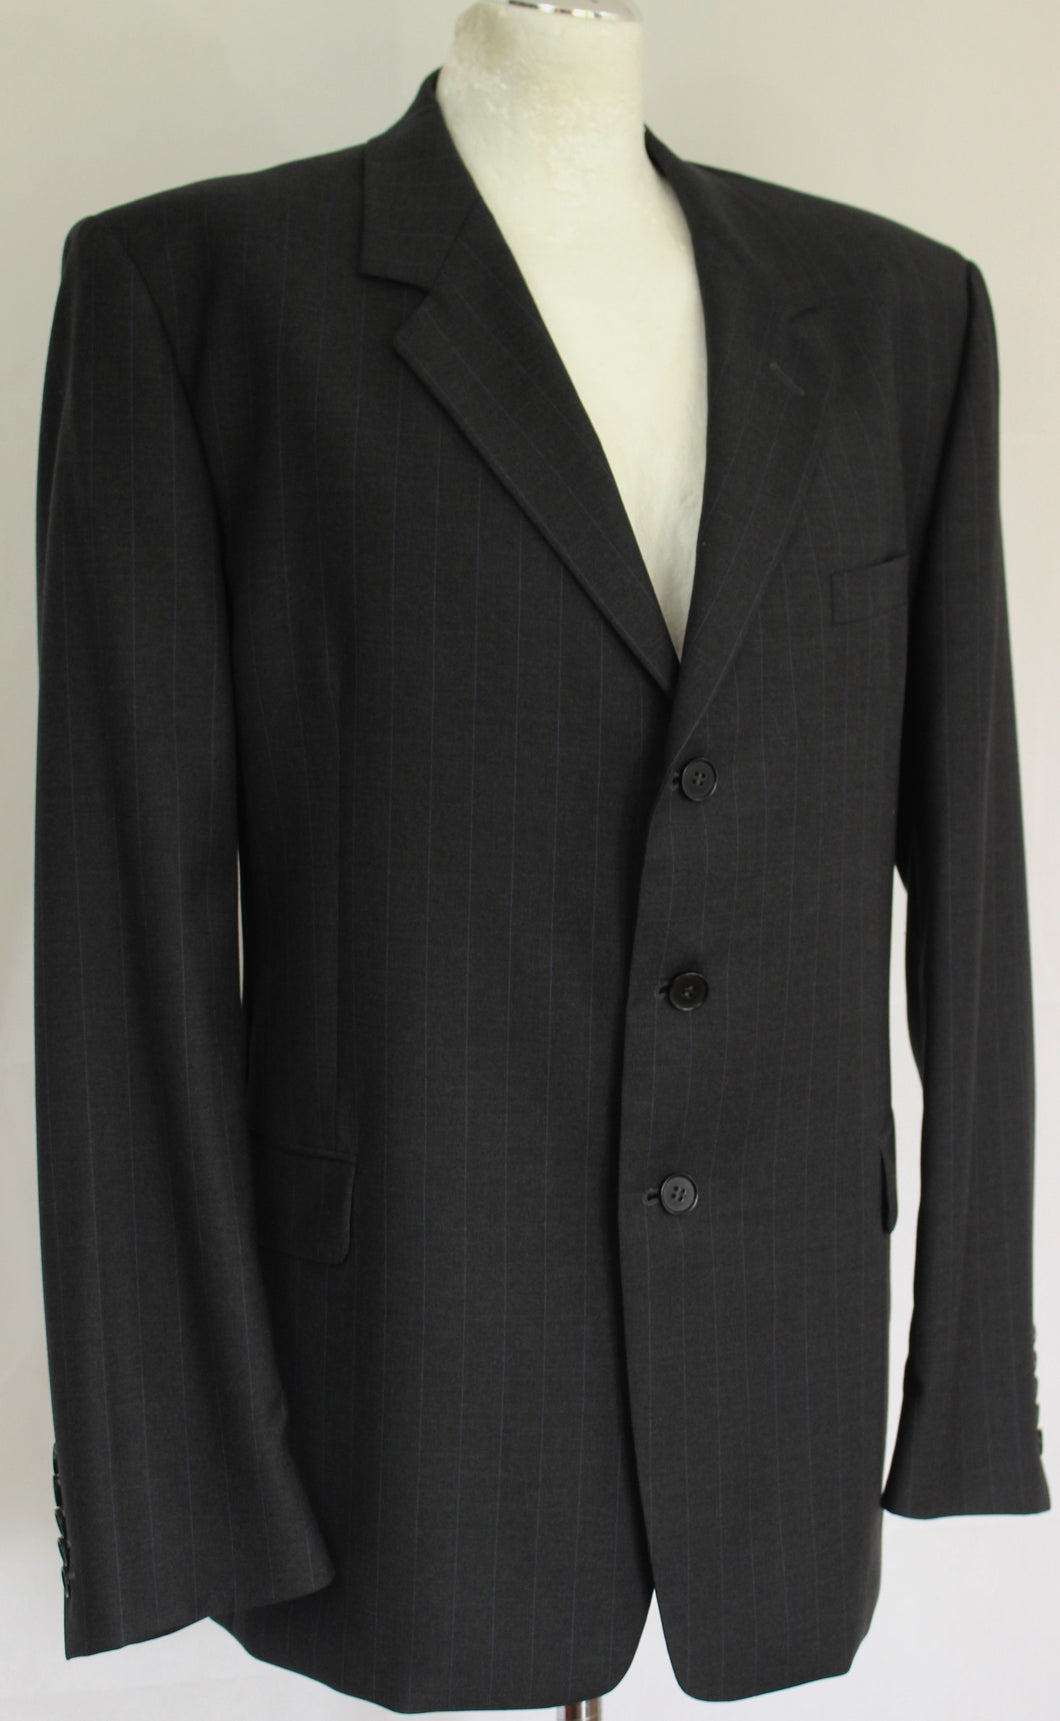 PAUL SMITH Mens Dark Grey Pinstriped 2 PIECE SUIT Size 44